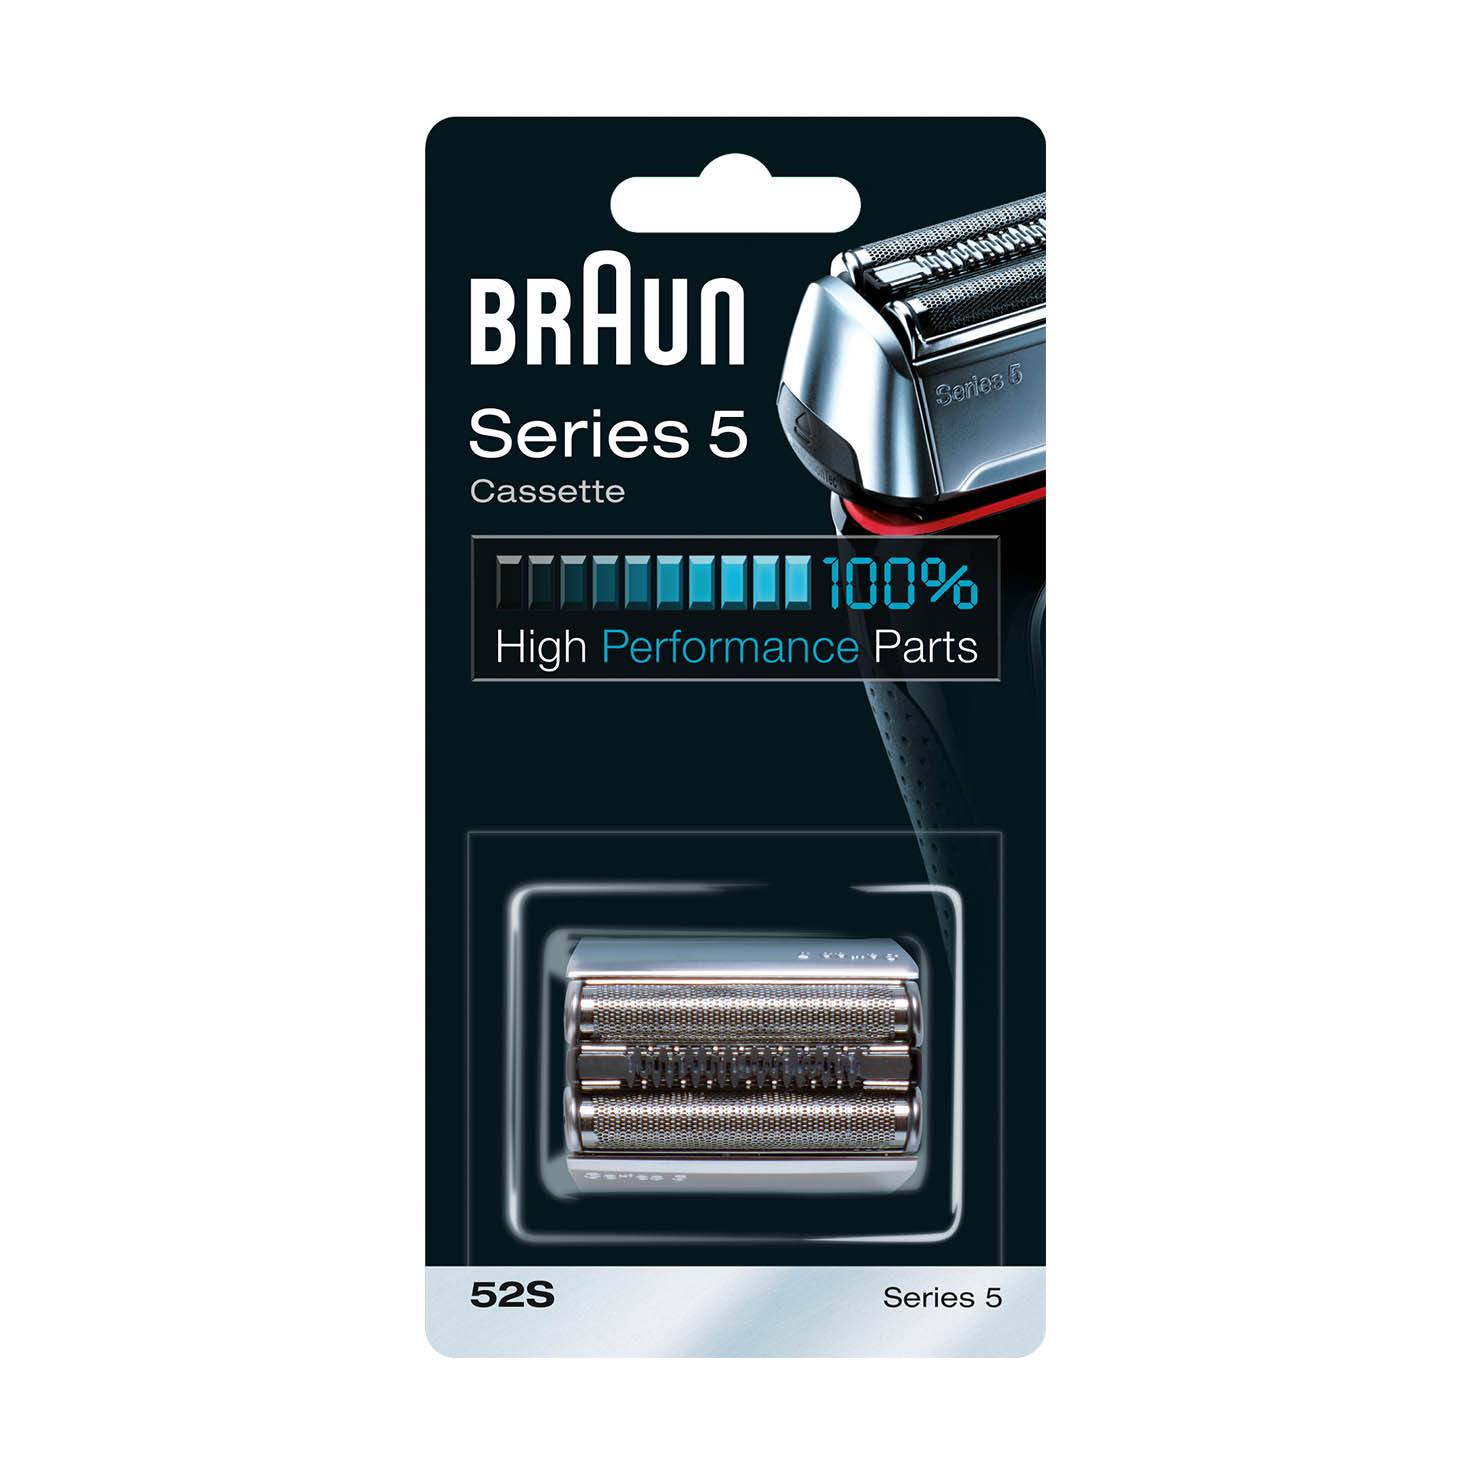 Braun Series 5 Combi 52s Cassette replacement pack